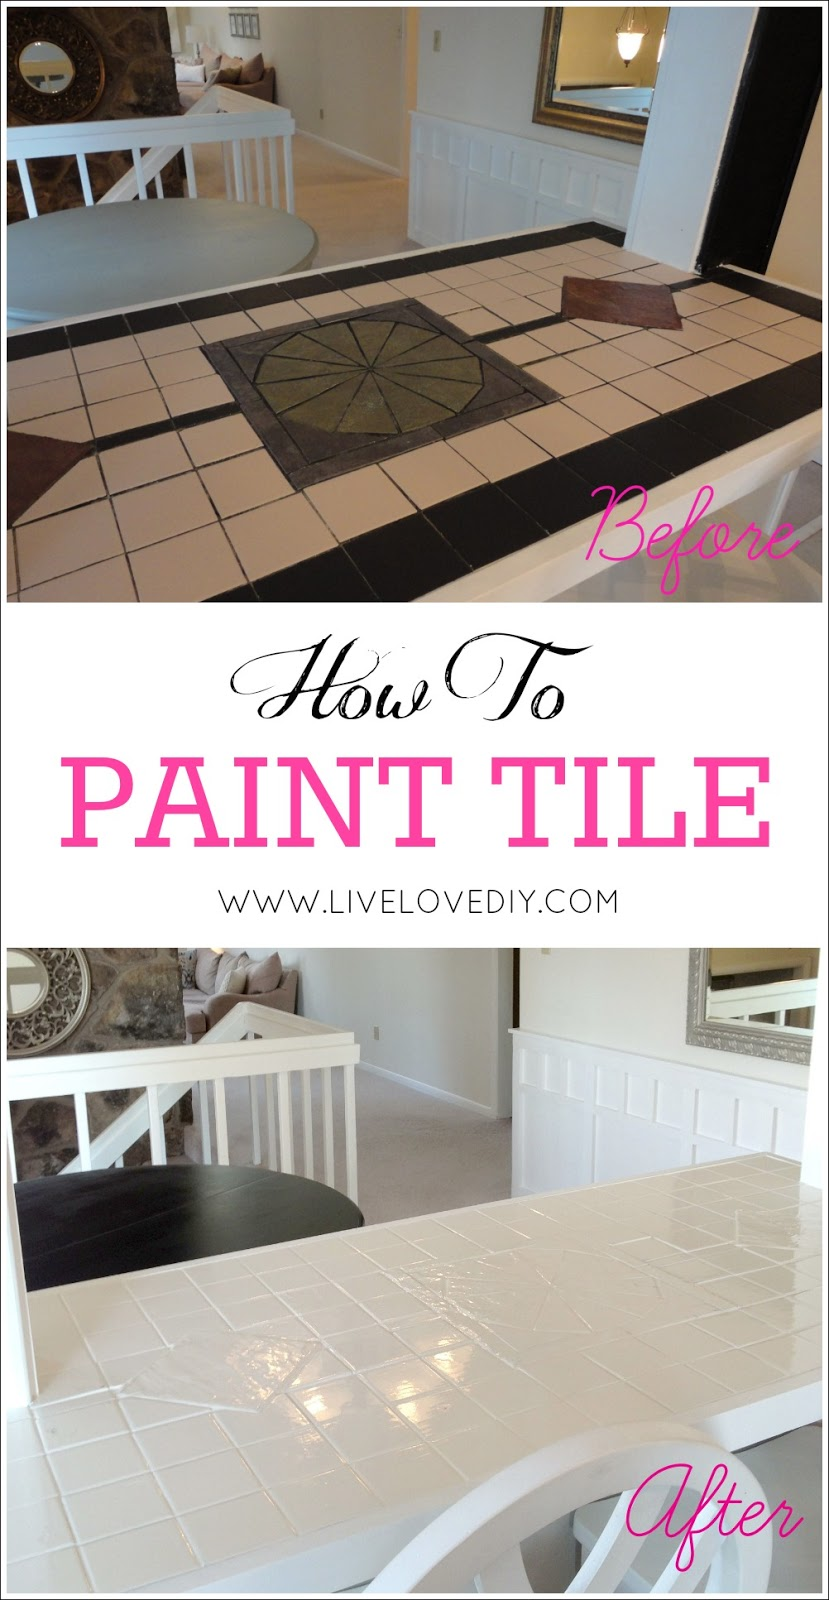 Paint ceramic tile countertops bstcountertops livelovediy how to paint tile countertops dailygadgetfo Gallery